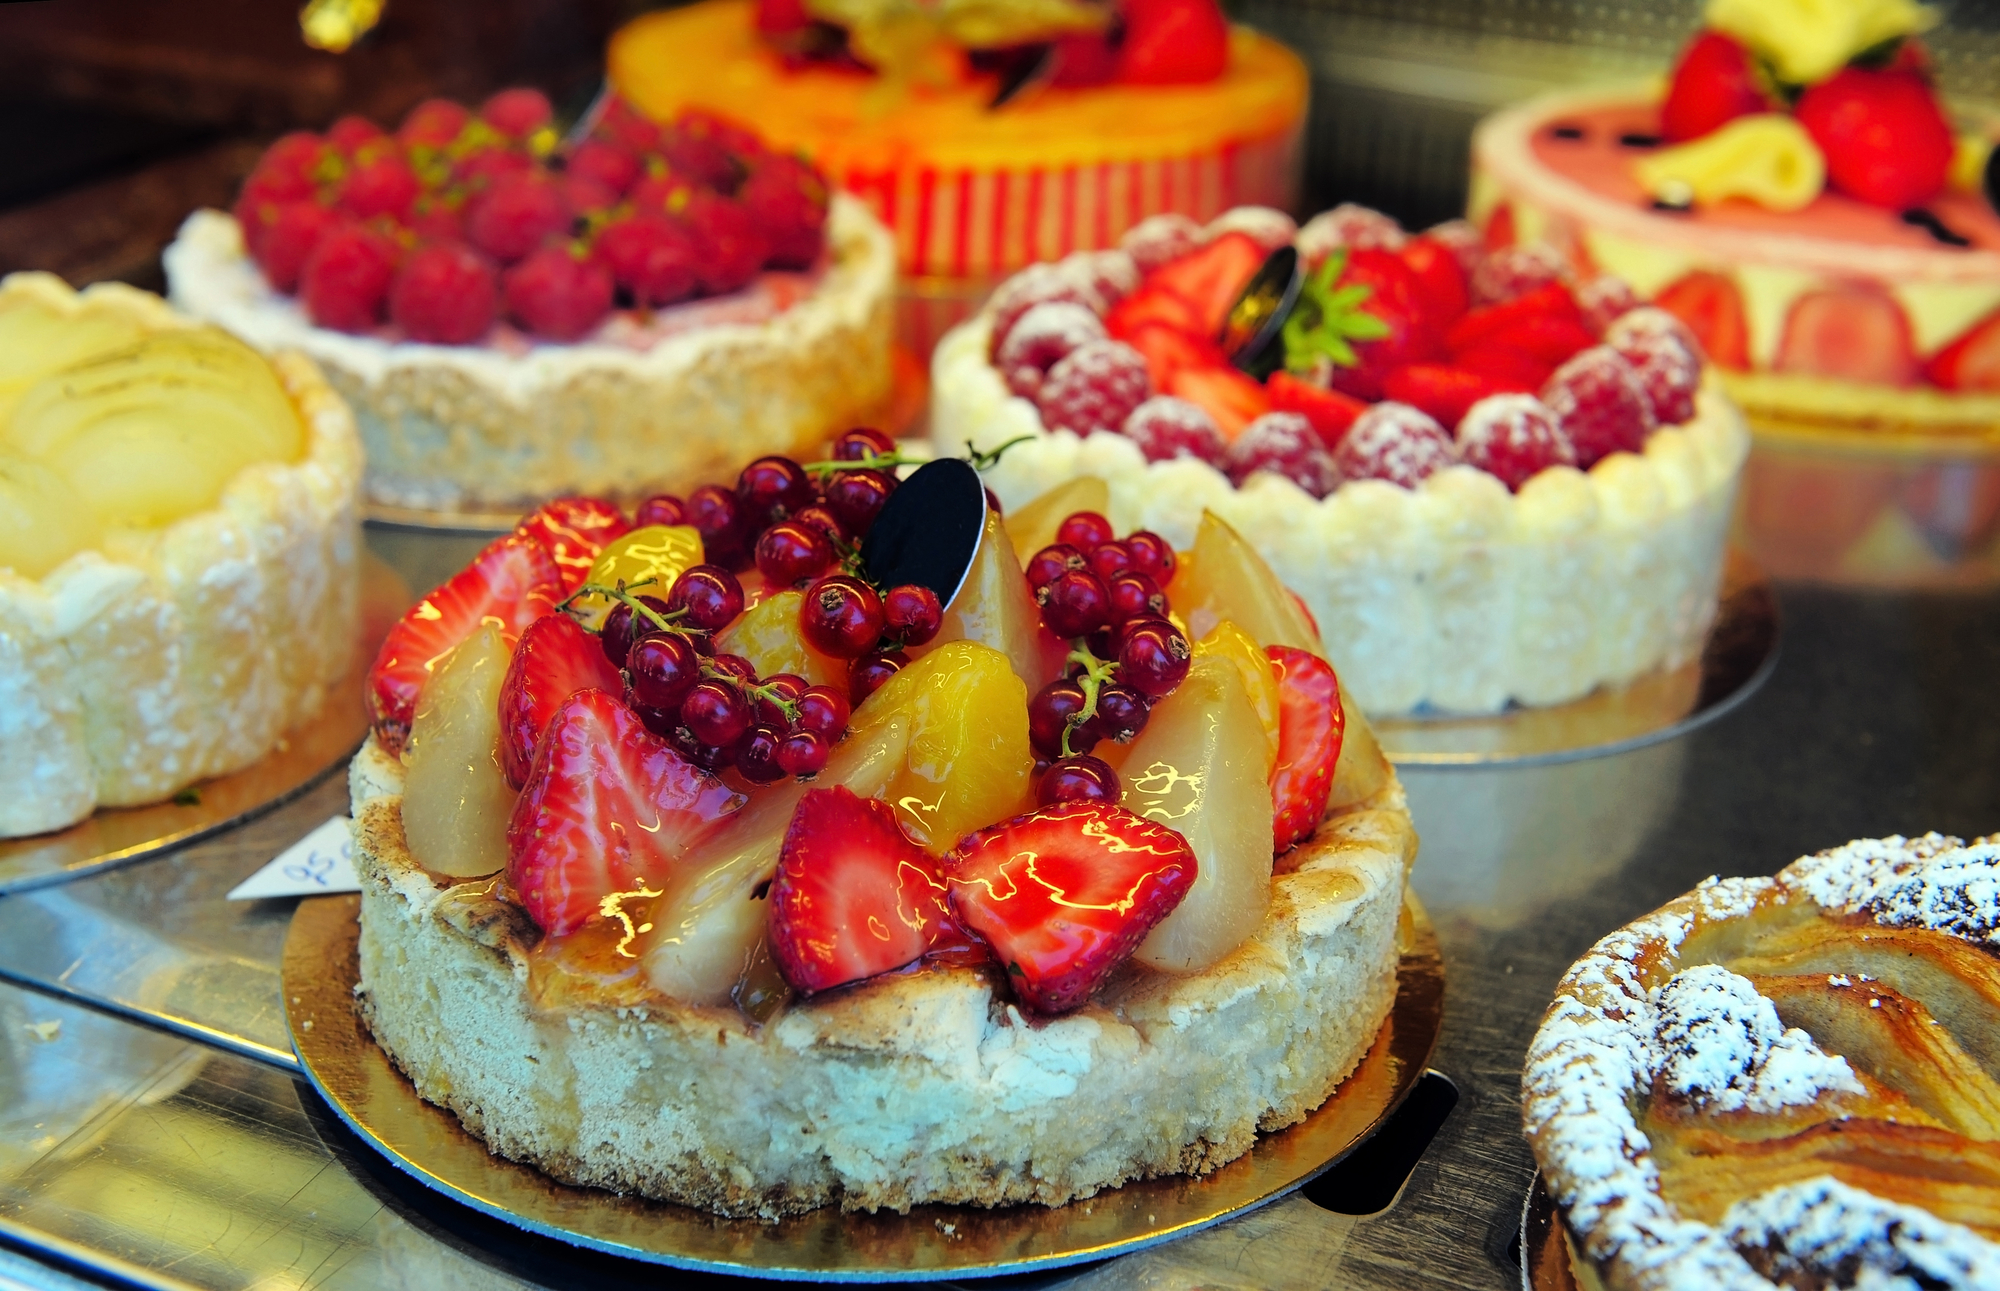 Cakes in a shop